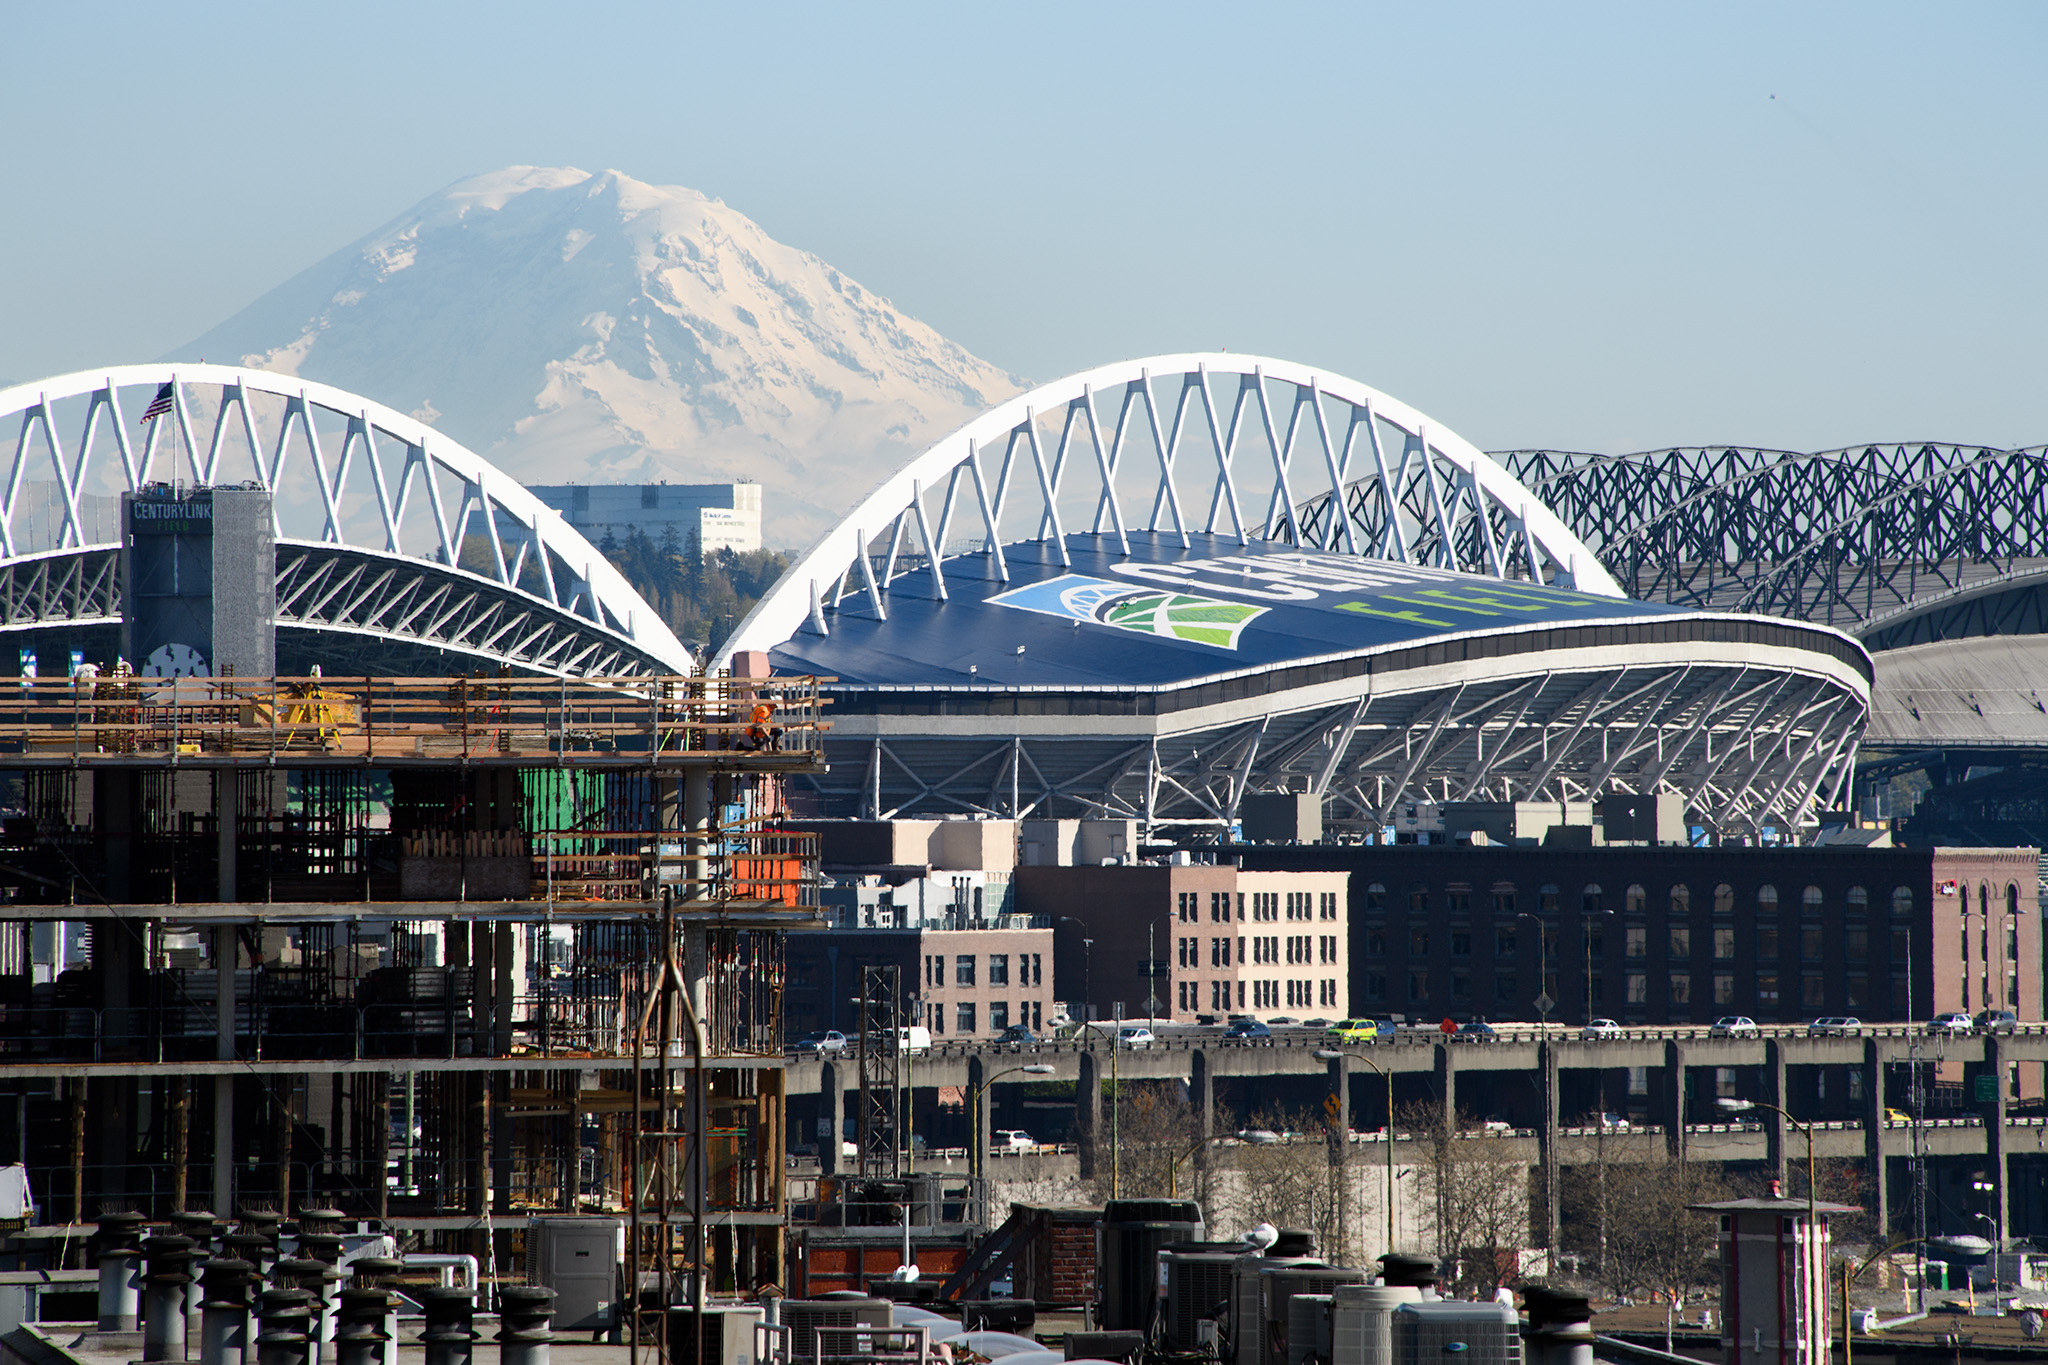 A view of Mt Ranier with the football and baseball stadiums in the foreground